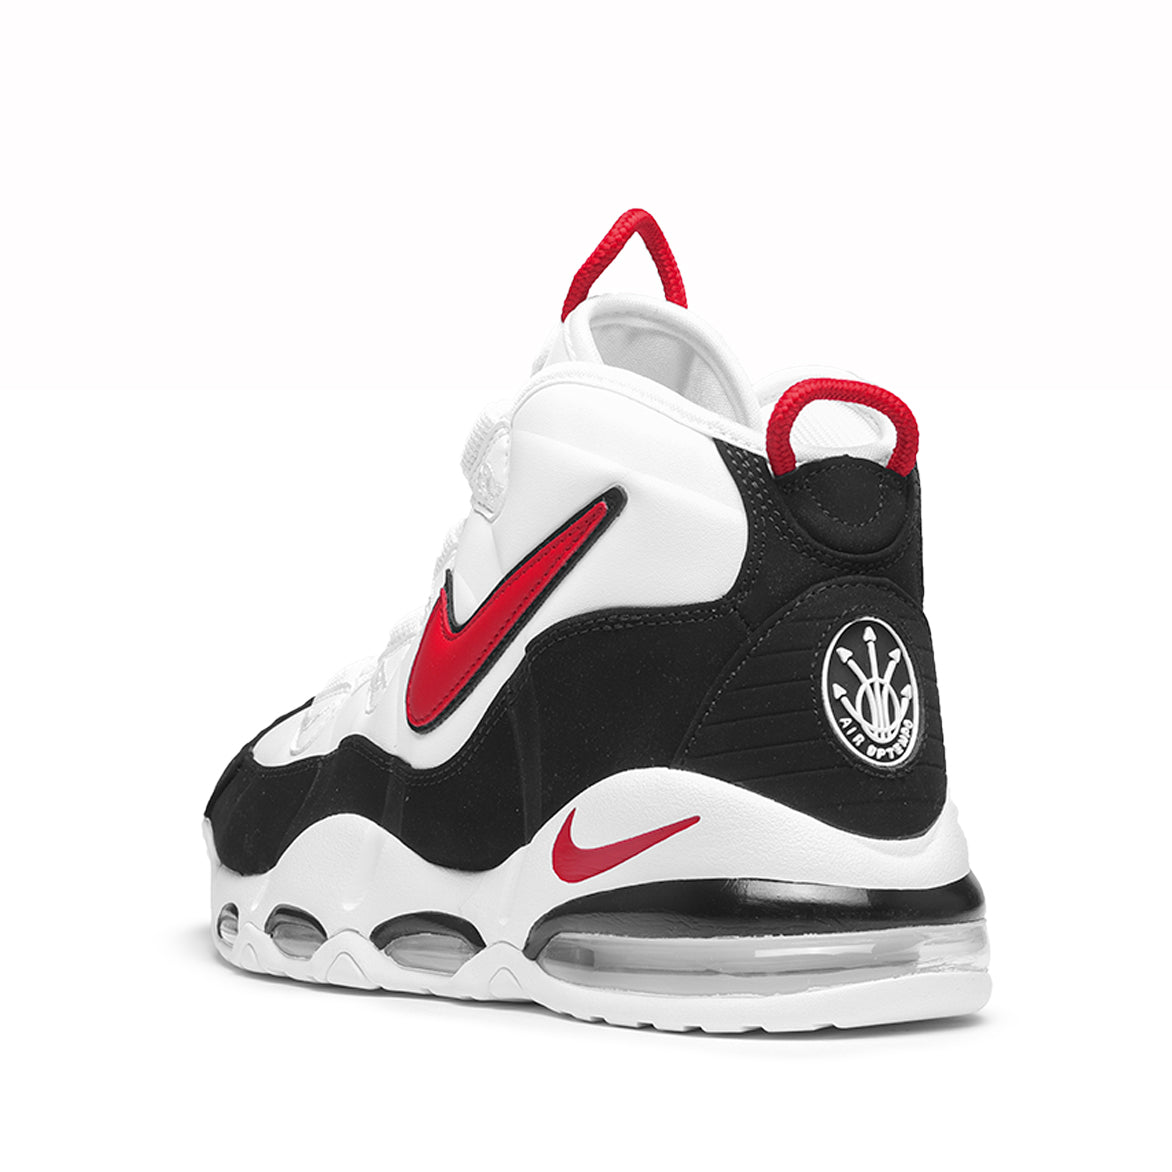 AIR MAX UPTEMPO '95 - WHITE / UNIVERSITY RED / BLACK